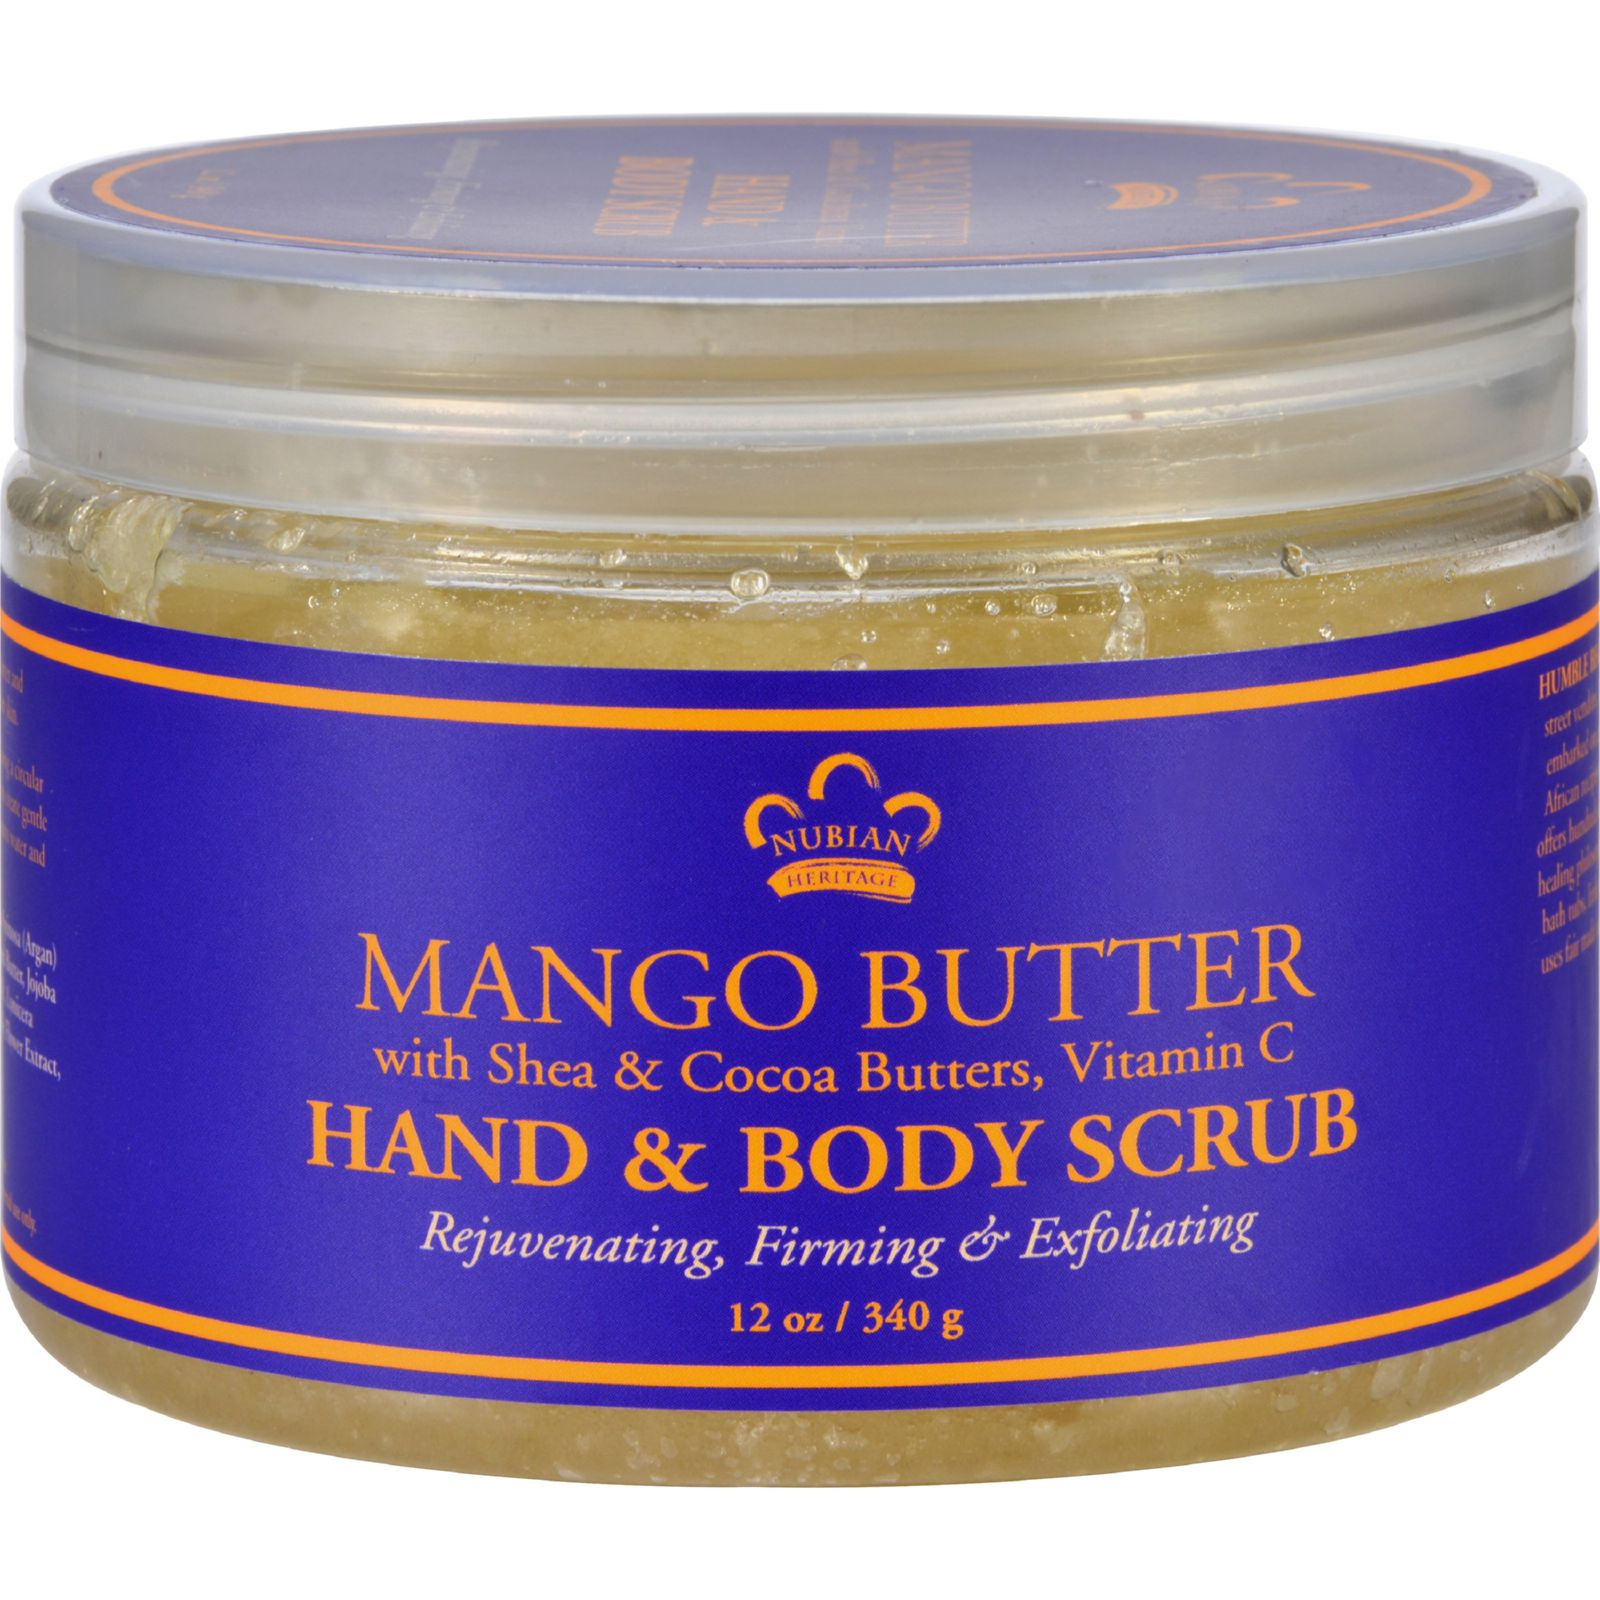 Nubian Heritage Hand and Body Scrub - Mango Butter - 12 oz